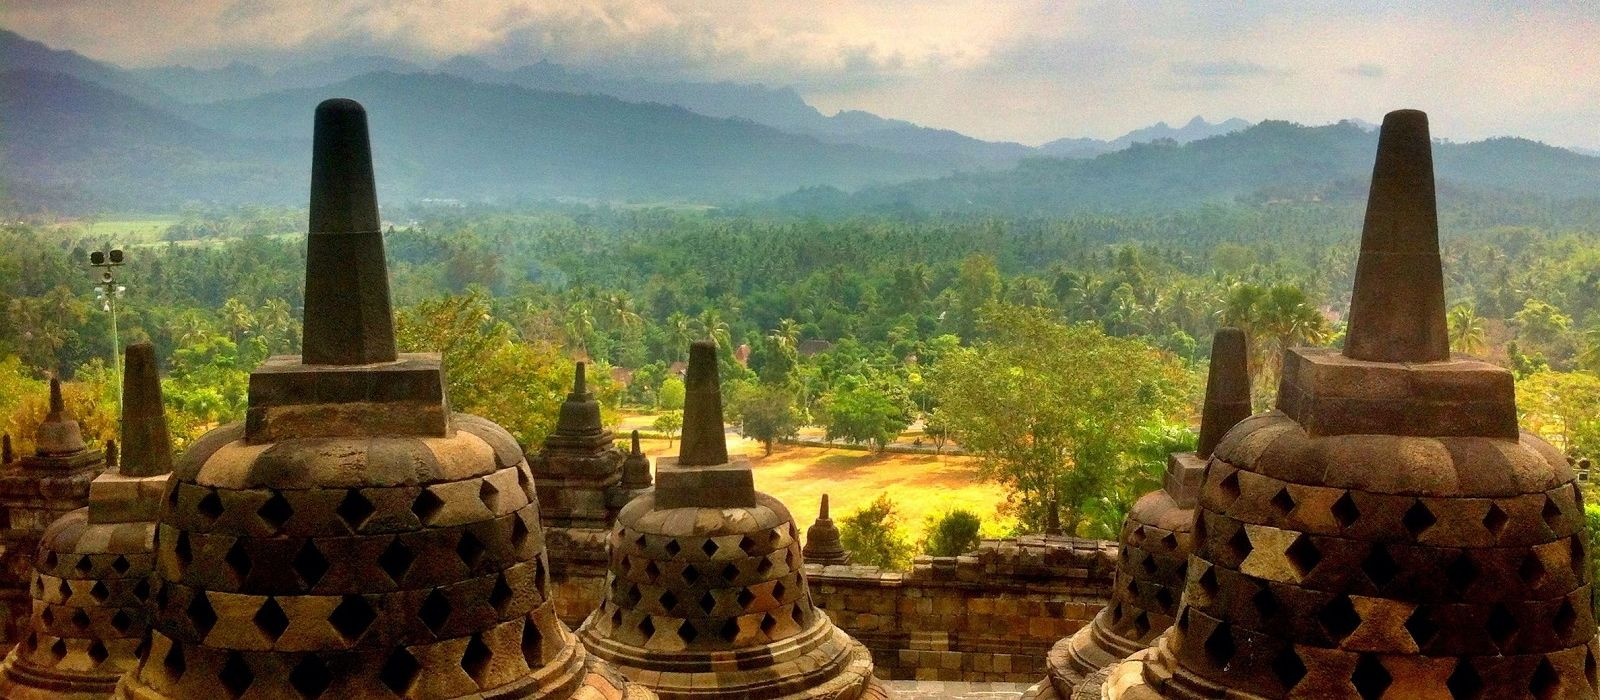 Festive Special: Indonesias Timeless Landscapes and Unique Culture